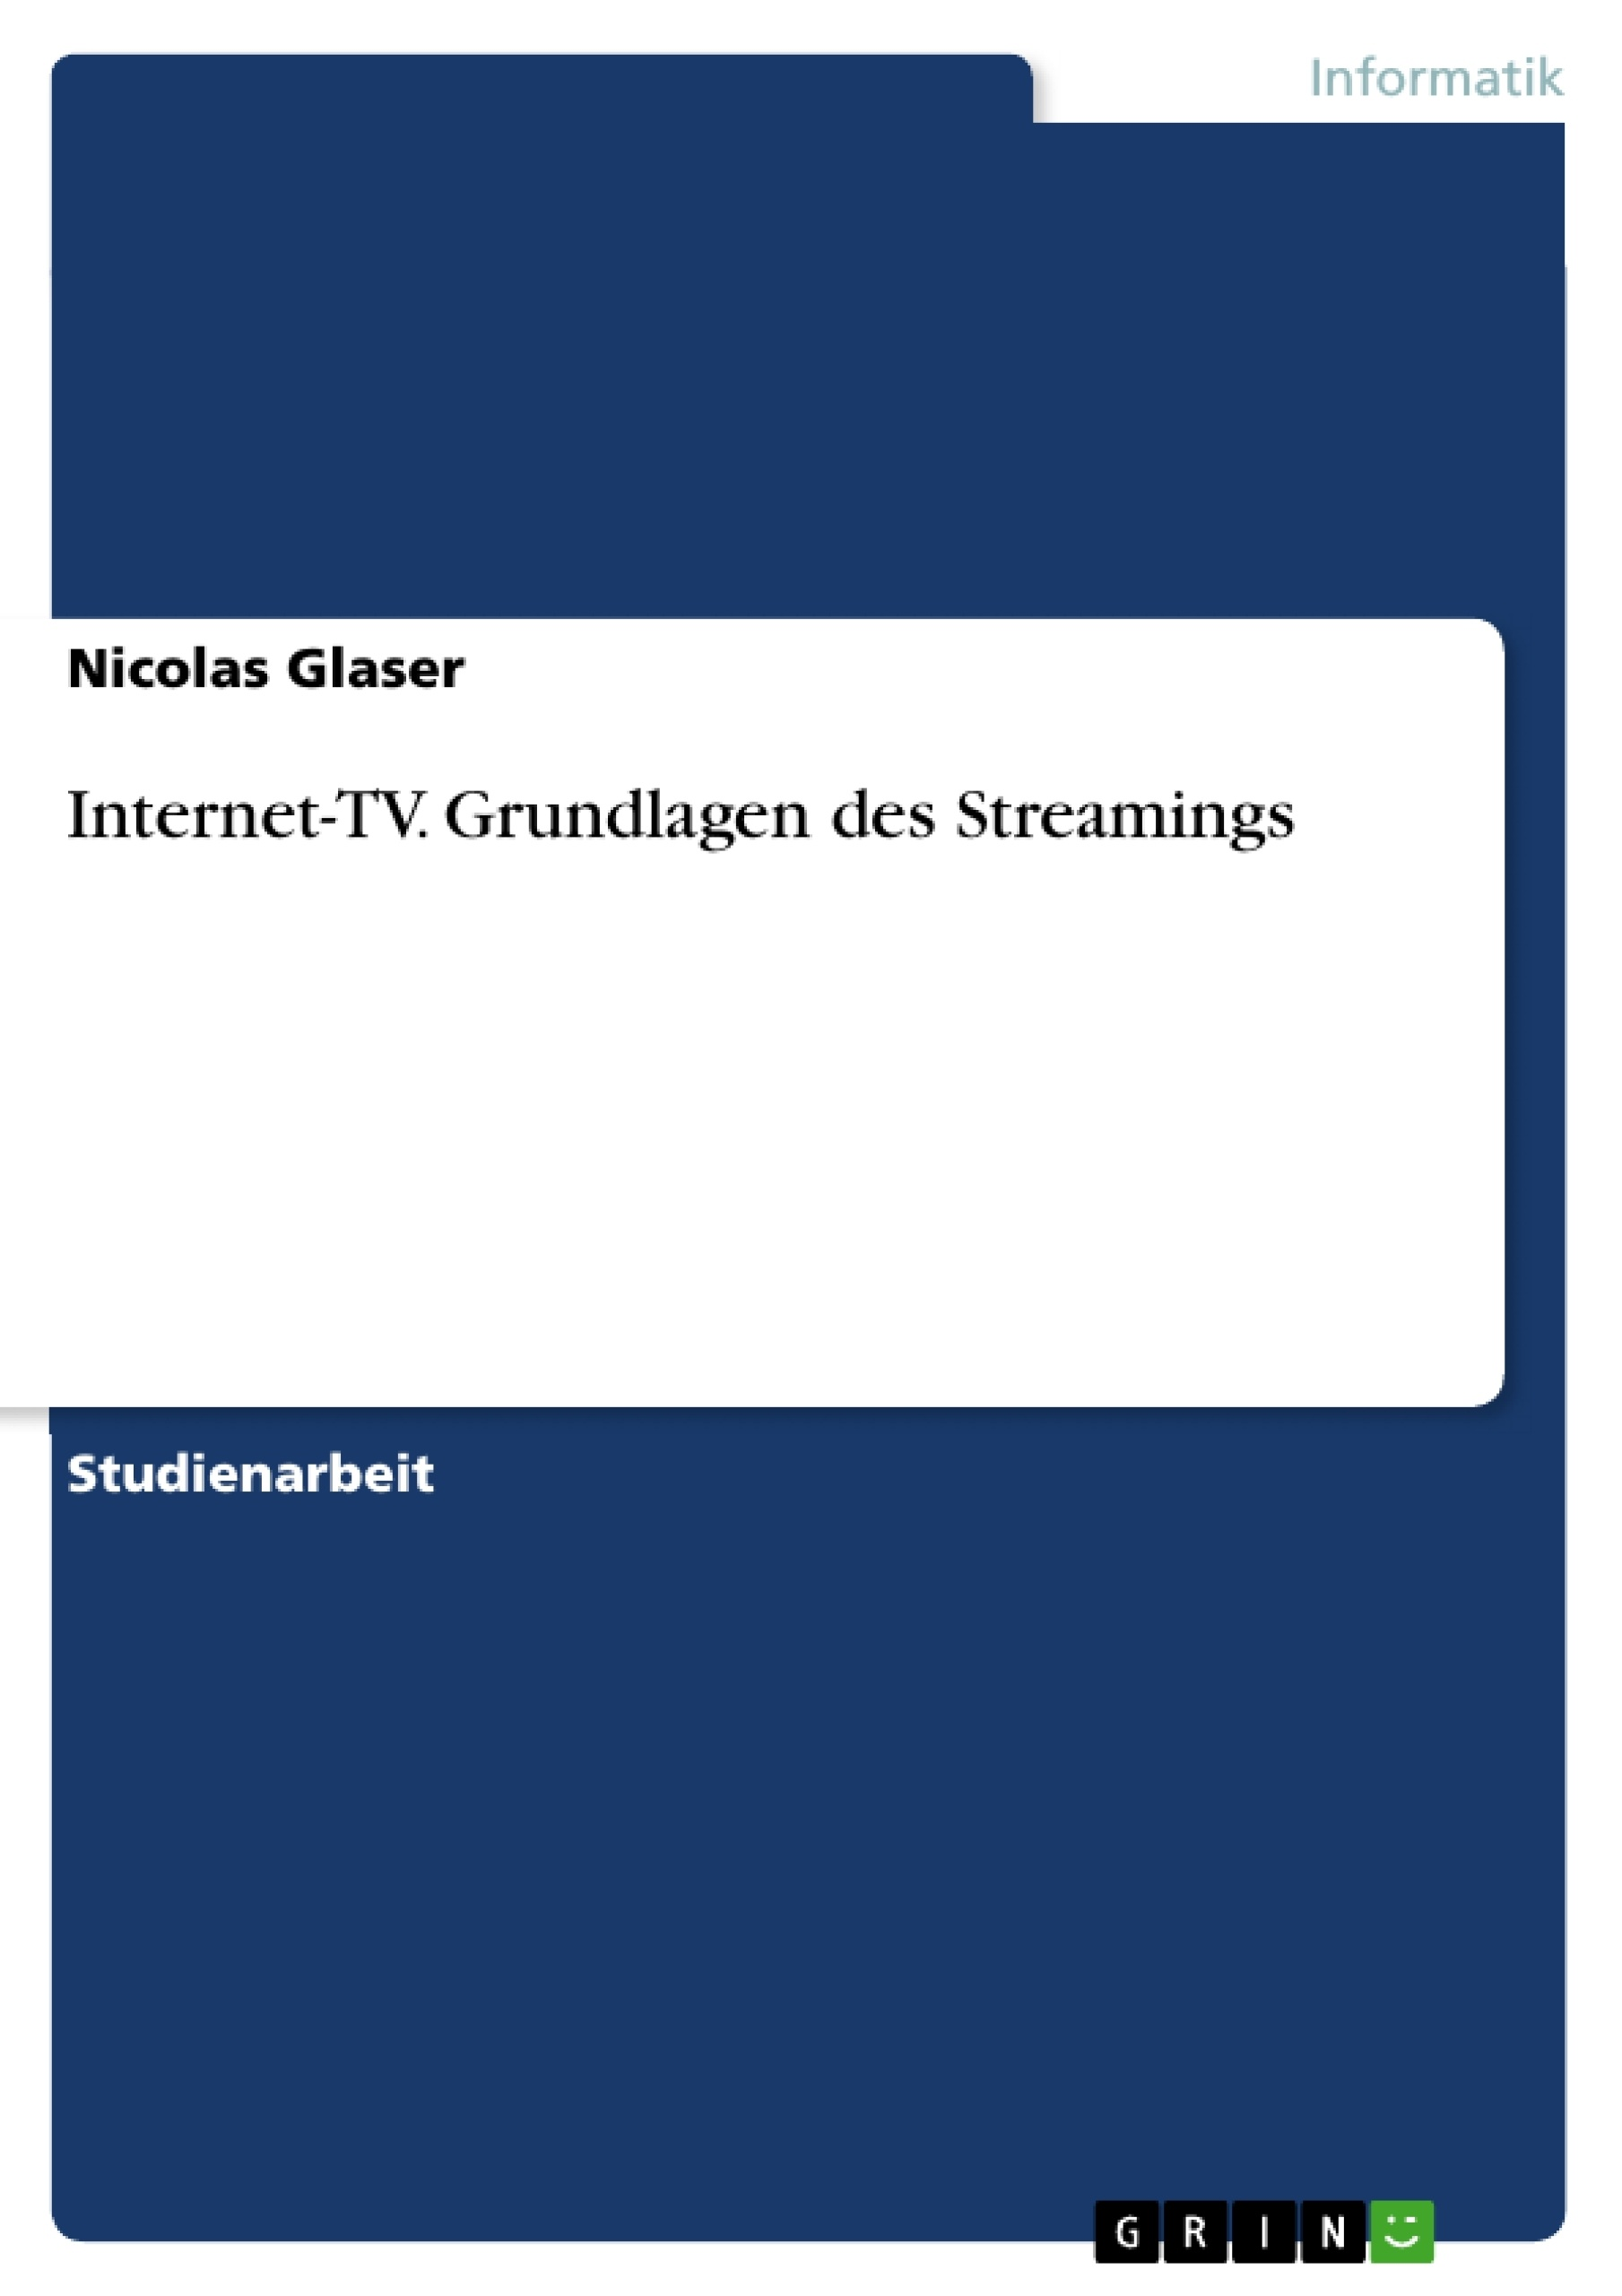 Titel: Internet-TV. Grundlagen des Streamings